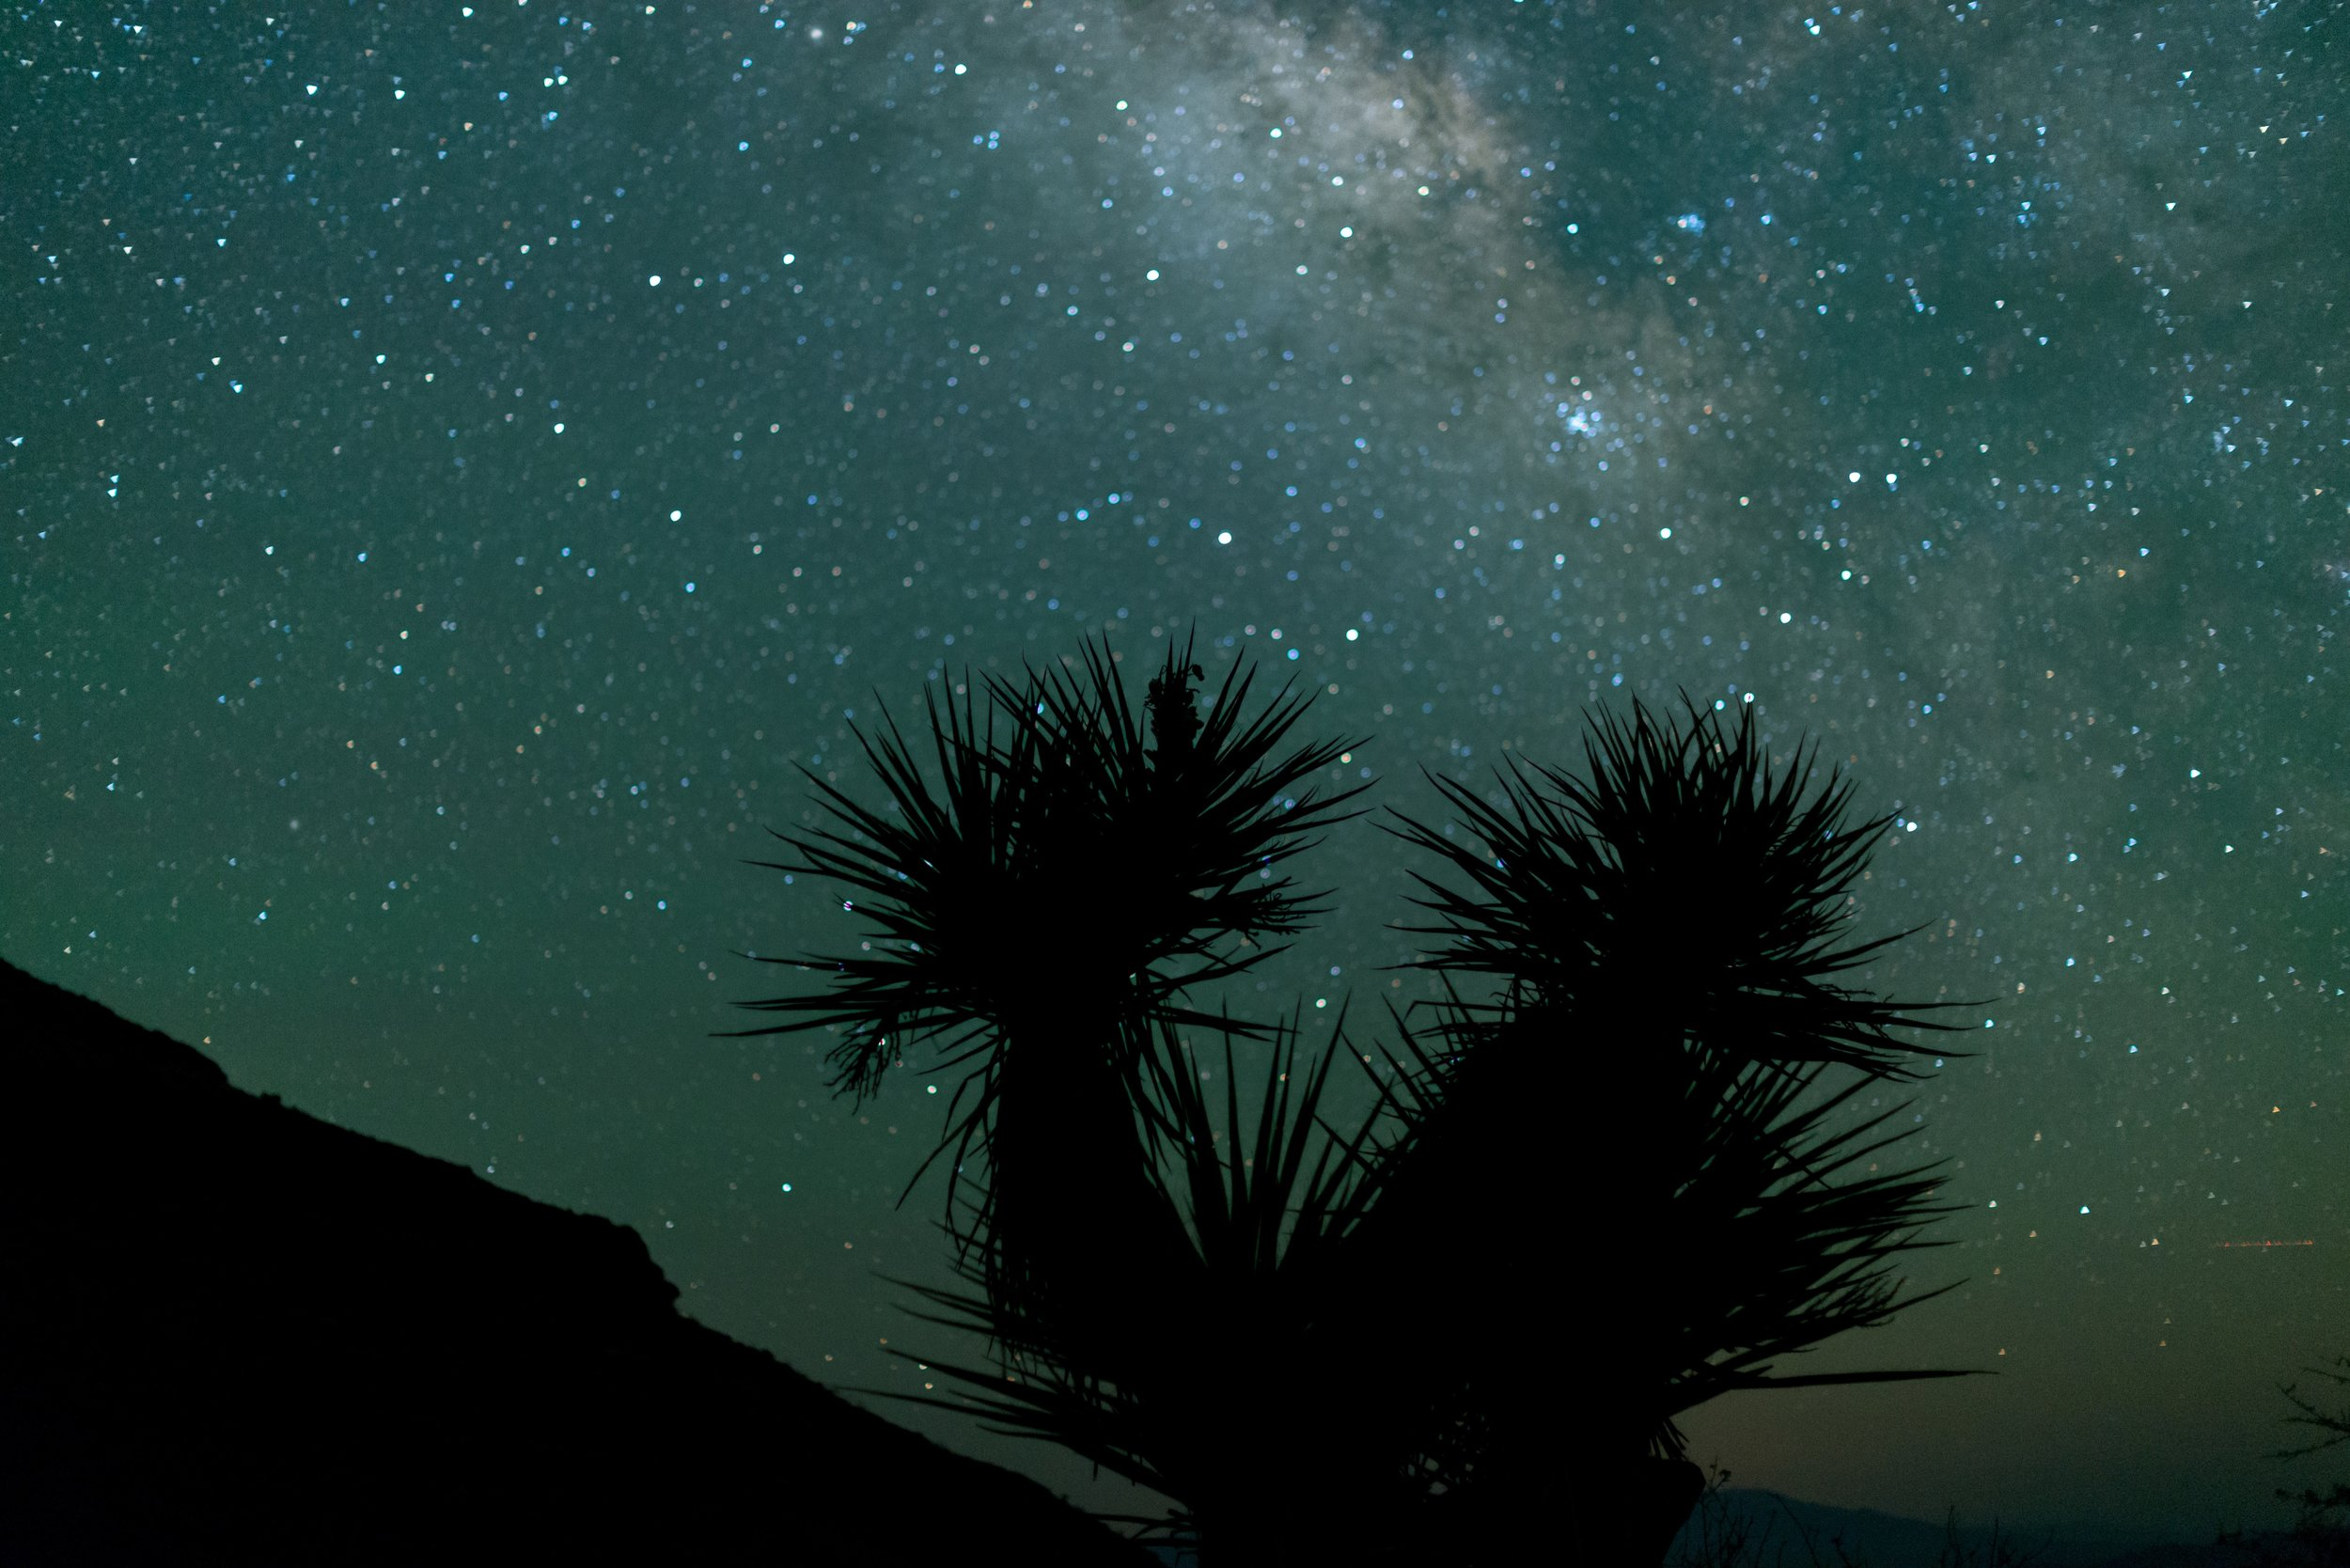 A silhouette of a Mojave yucca against the Milky Way.